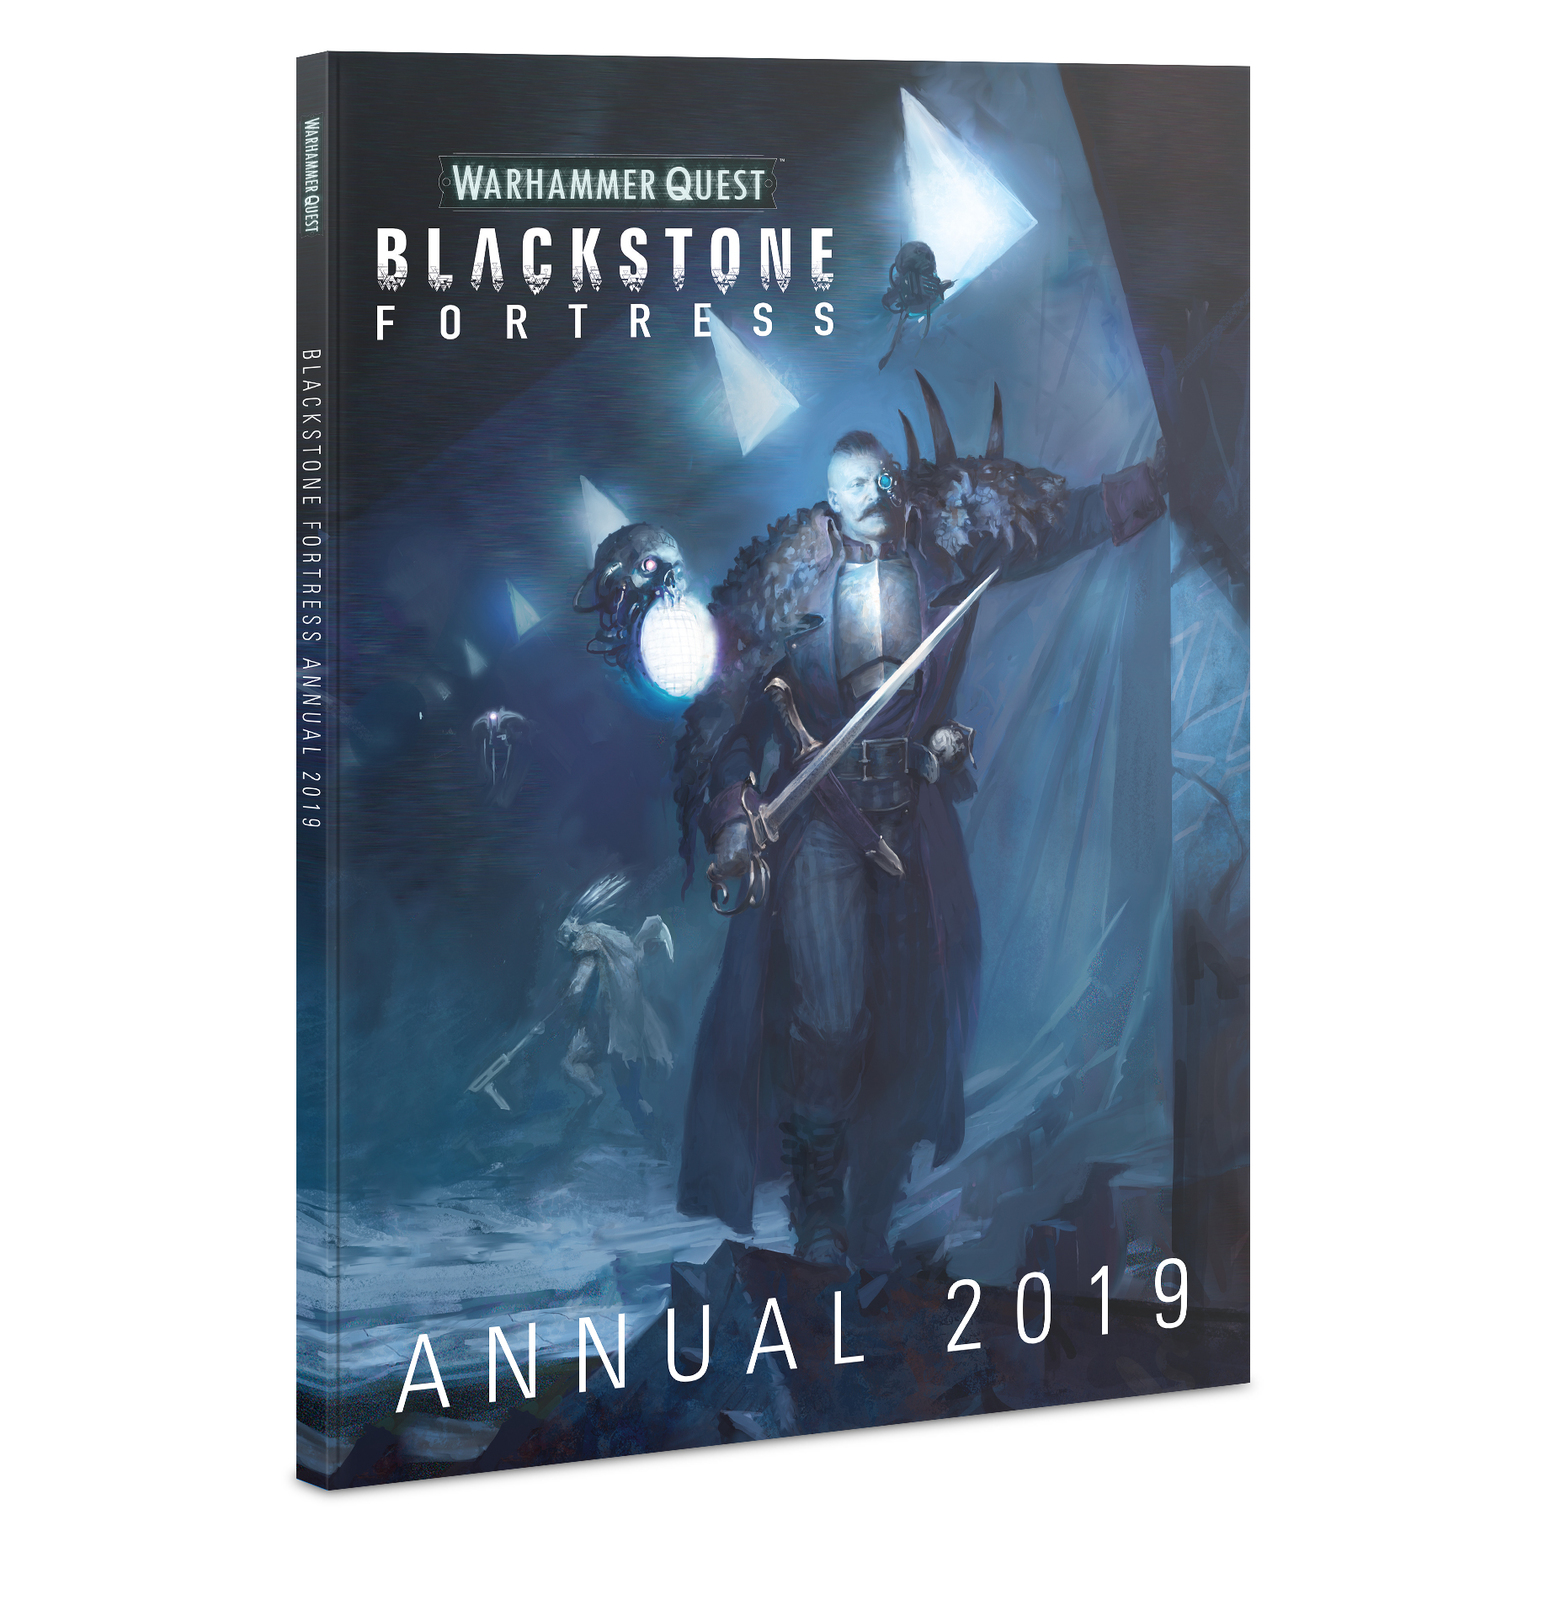 Blackstone Fortress: Annual 2019 image